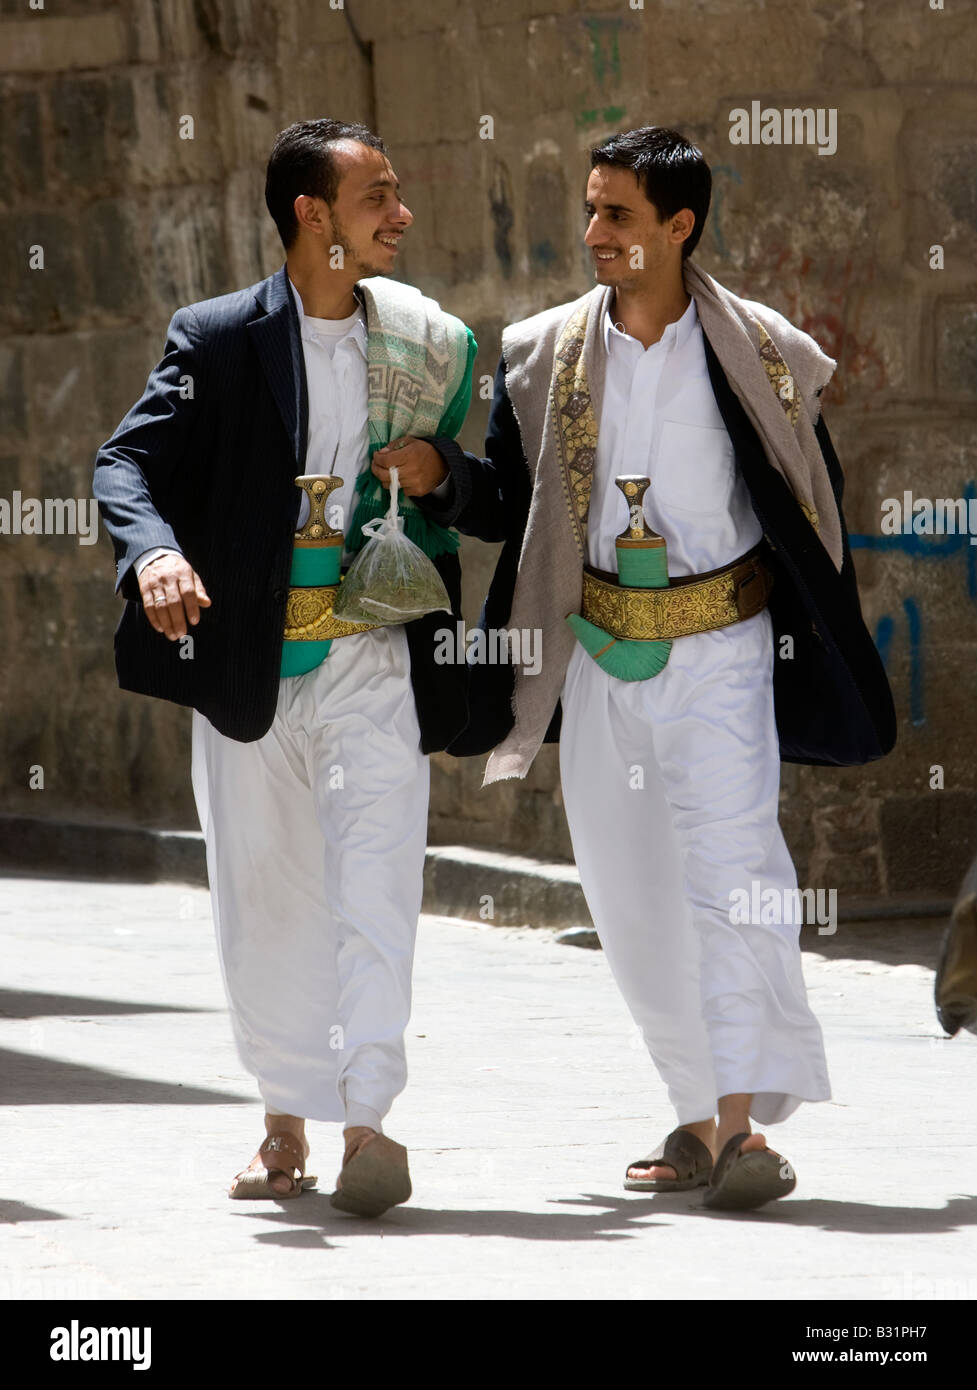 Young Muslim men from Yemen walking through Old Sanaa City wearing their traditional Jambiya daggers - Stock Image